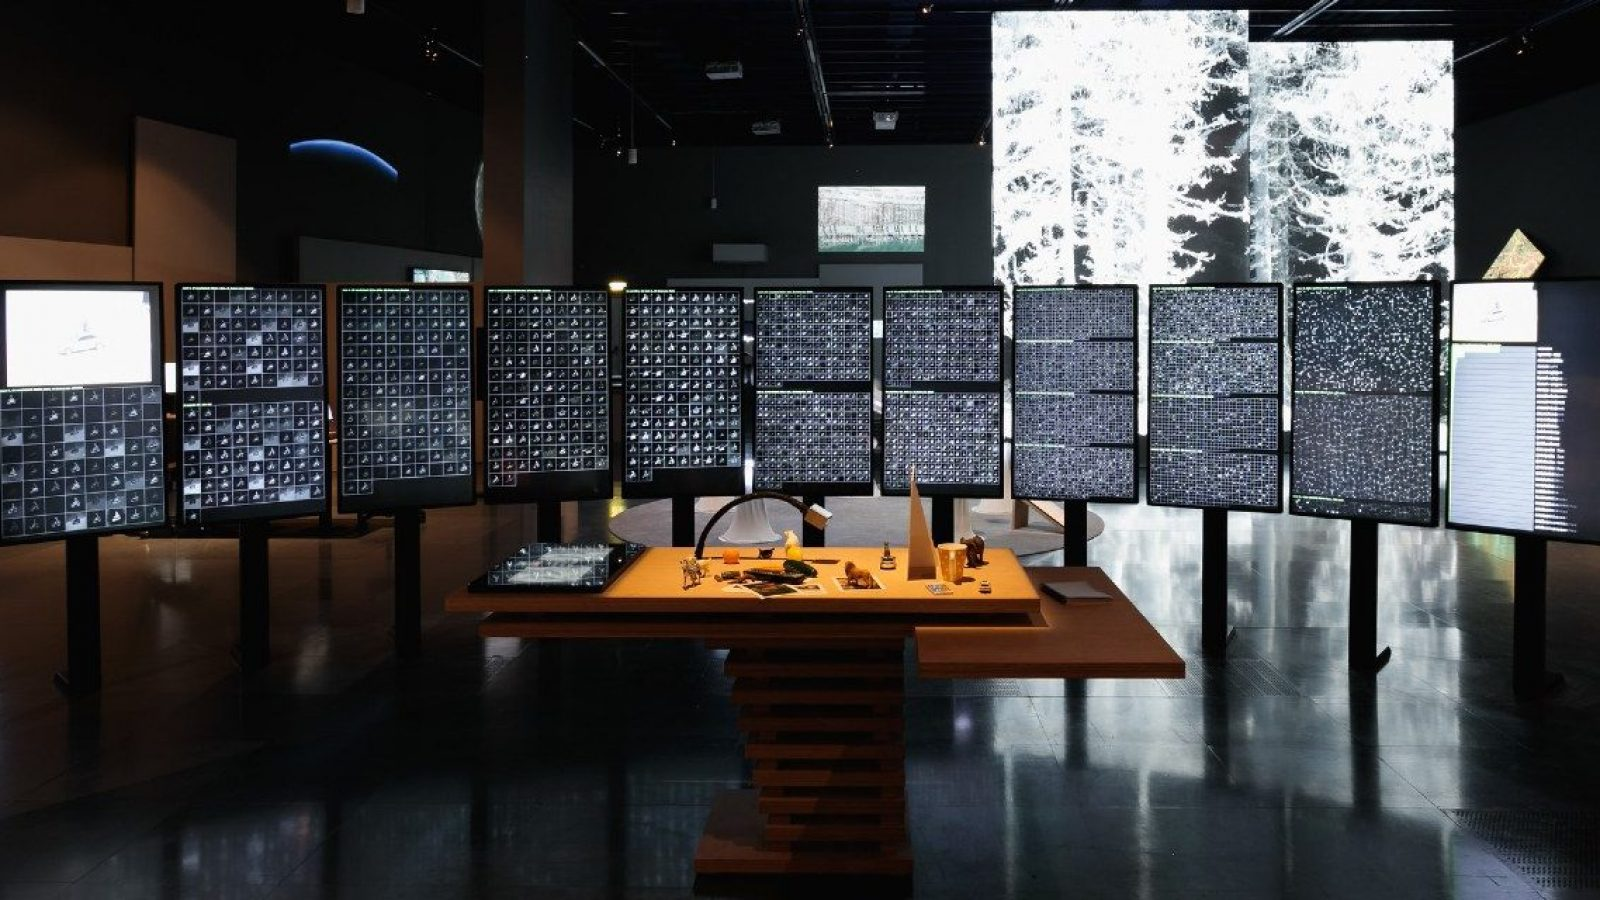 A dark room with many screens that show what appear to be small photo negatives.